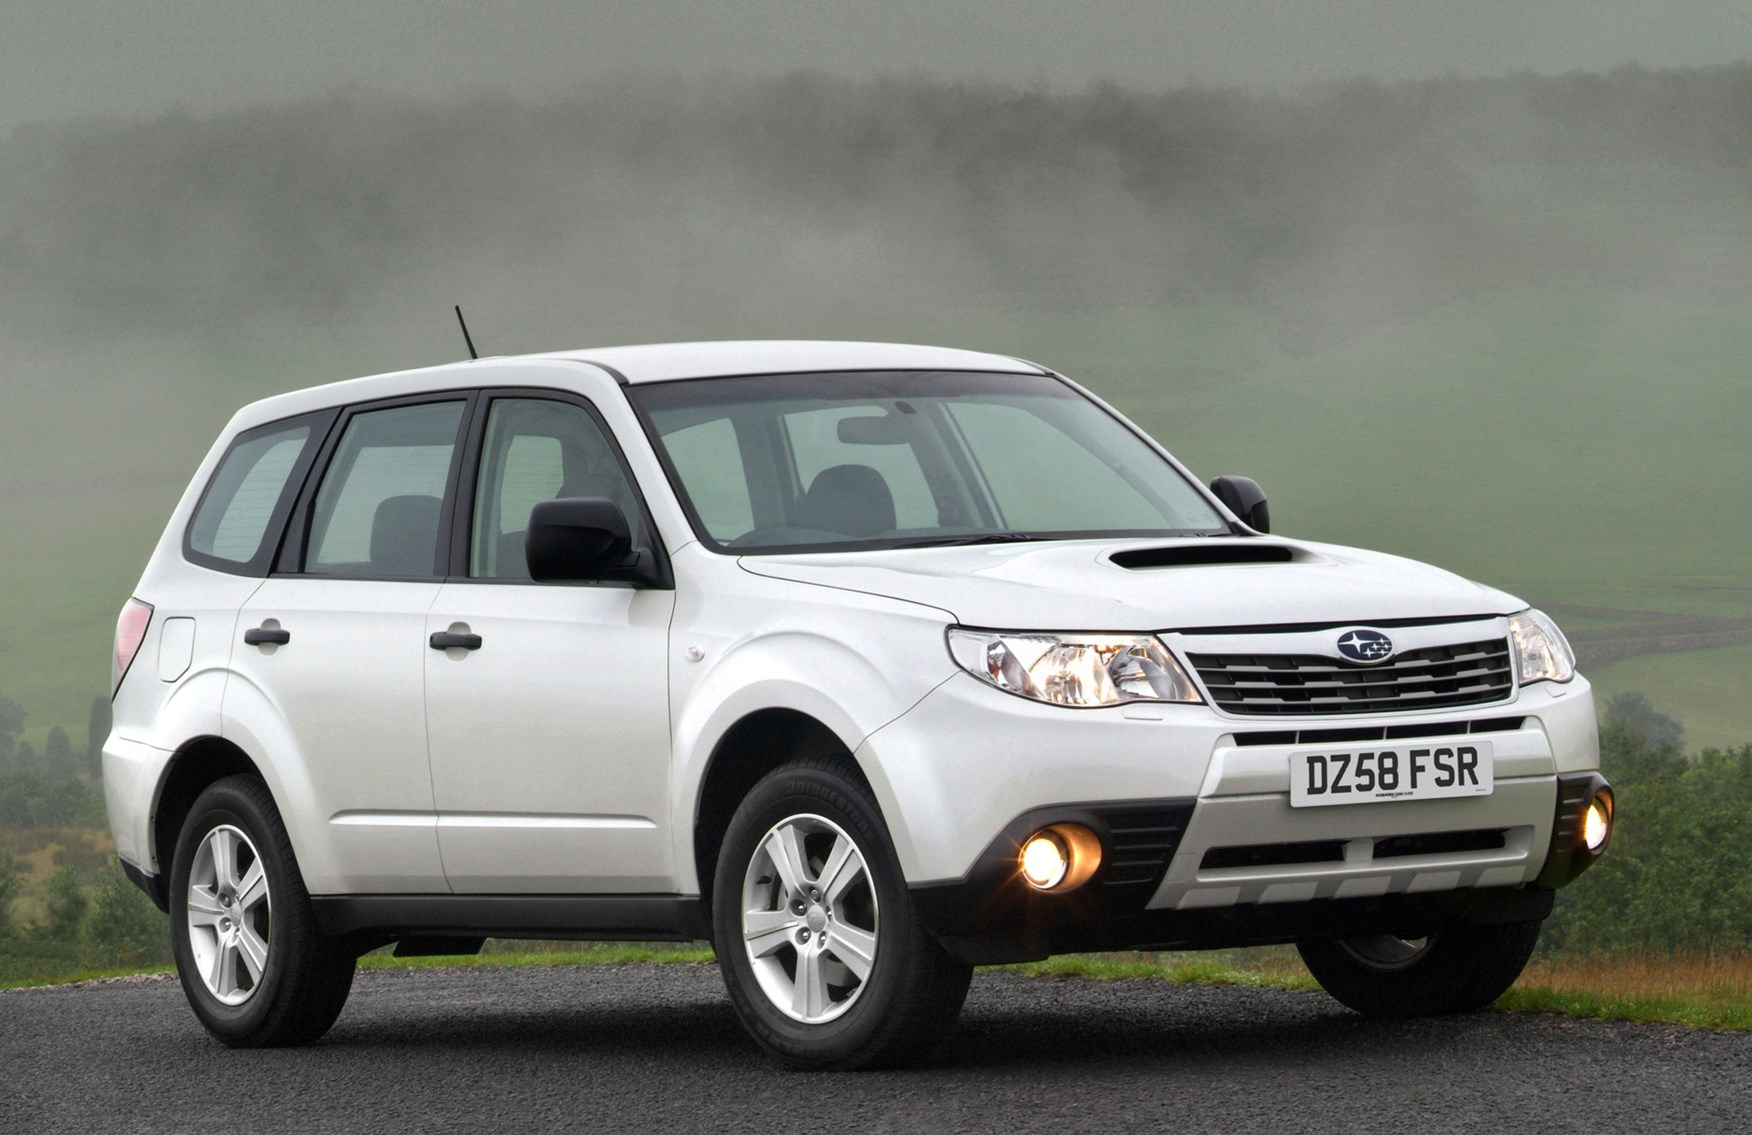 Used Subaru Forester Estate (2008 - 2012) Review | Parkers